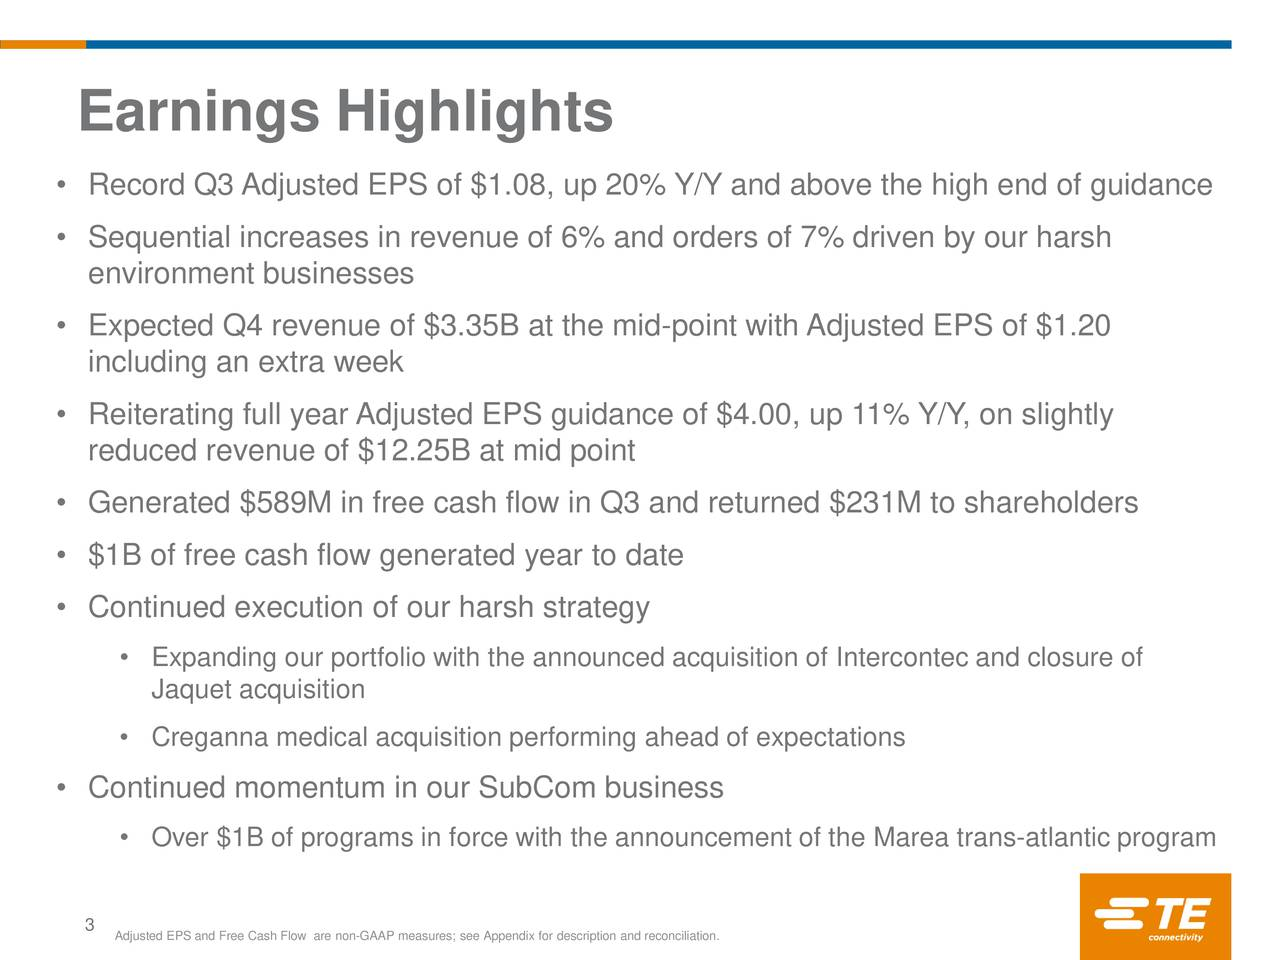 Record Q3 Adjusted EPS of $1.08, up 20% Y/Y and above the high end of guidance Sequential increases in revenue of 6% and orders of 7% driven by our harsh environment businesses Expected Q4 revenue of $3.35B at the mid-point with Adjusted EPS of $1.20 including an extra week Reiterating full year Adjusted EPS guidance of $4.00, up 11% Y/Y, on slightly reduced revenue of $12.25B at mid point Generated $589M in free cash flow in Q3 and returned $231M to shareholders $1B of free cash flow generated year to date Continued execution of our harsh strategy Expanding our portfolio with the announced acquisition of Intercontec and closure of Jaquet acquisition Creganna medical acquisition performing ahead of expectations Continued momentum in our SubCom business Over $1B of programs in force with the announcement of the Marea trans-atlantic program 3 Adjusted EPS and Free Cash Flow are non-GAAP measures; see Appendix for description and reconciliation.